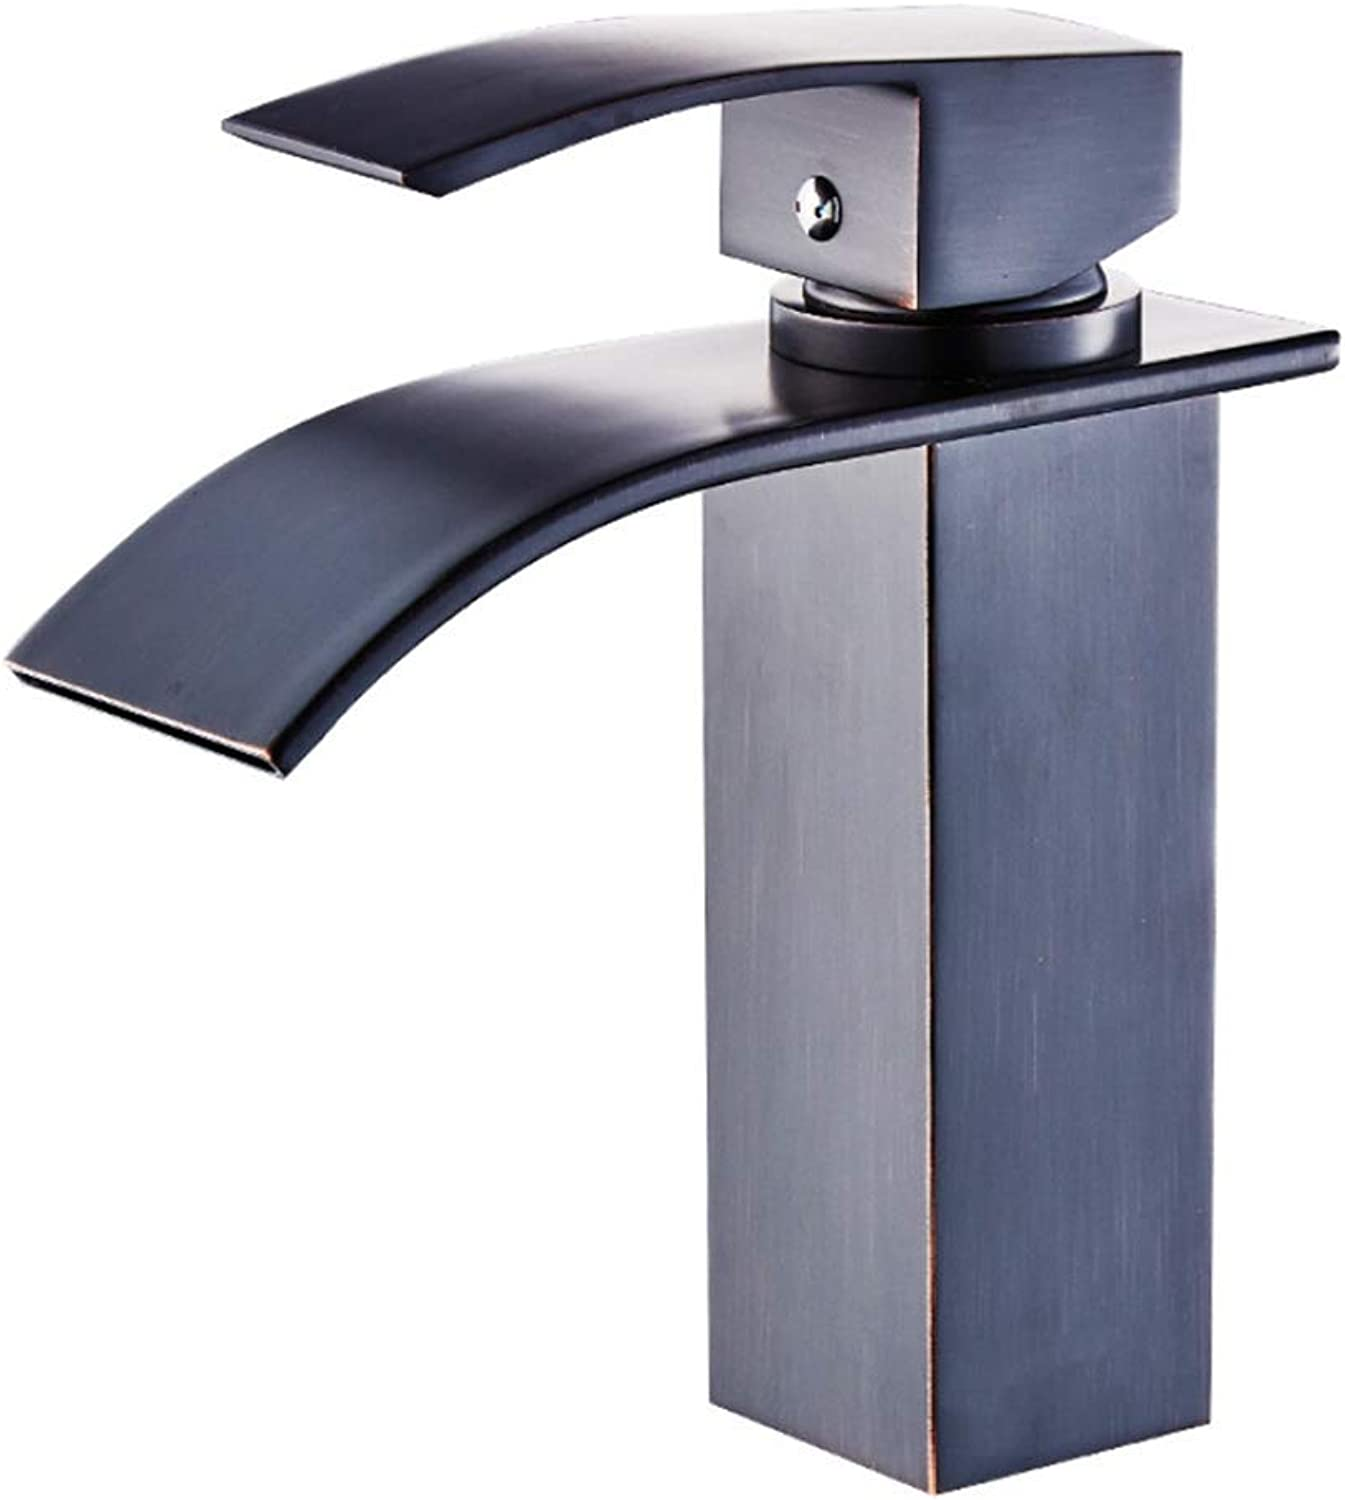 Pull Out The Pull Down Stainless Steelall Copper, Black Bronze, Square Faucet Basin, Hot and Cold Water Faucet, Washbasin, Basin, Faucet, Waterfall Faucet.